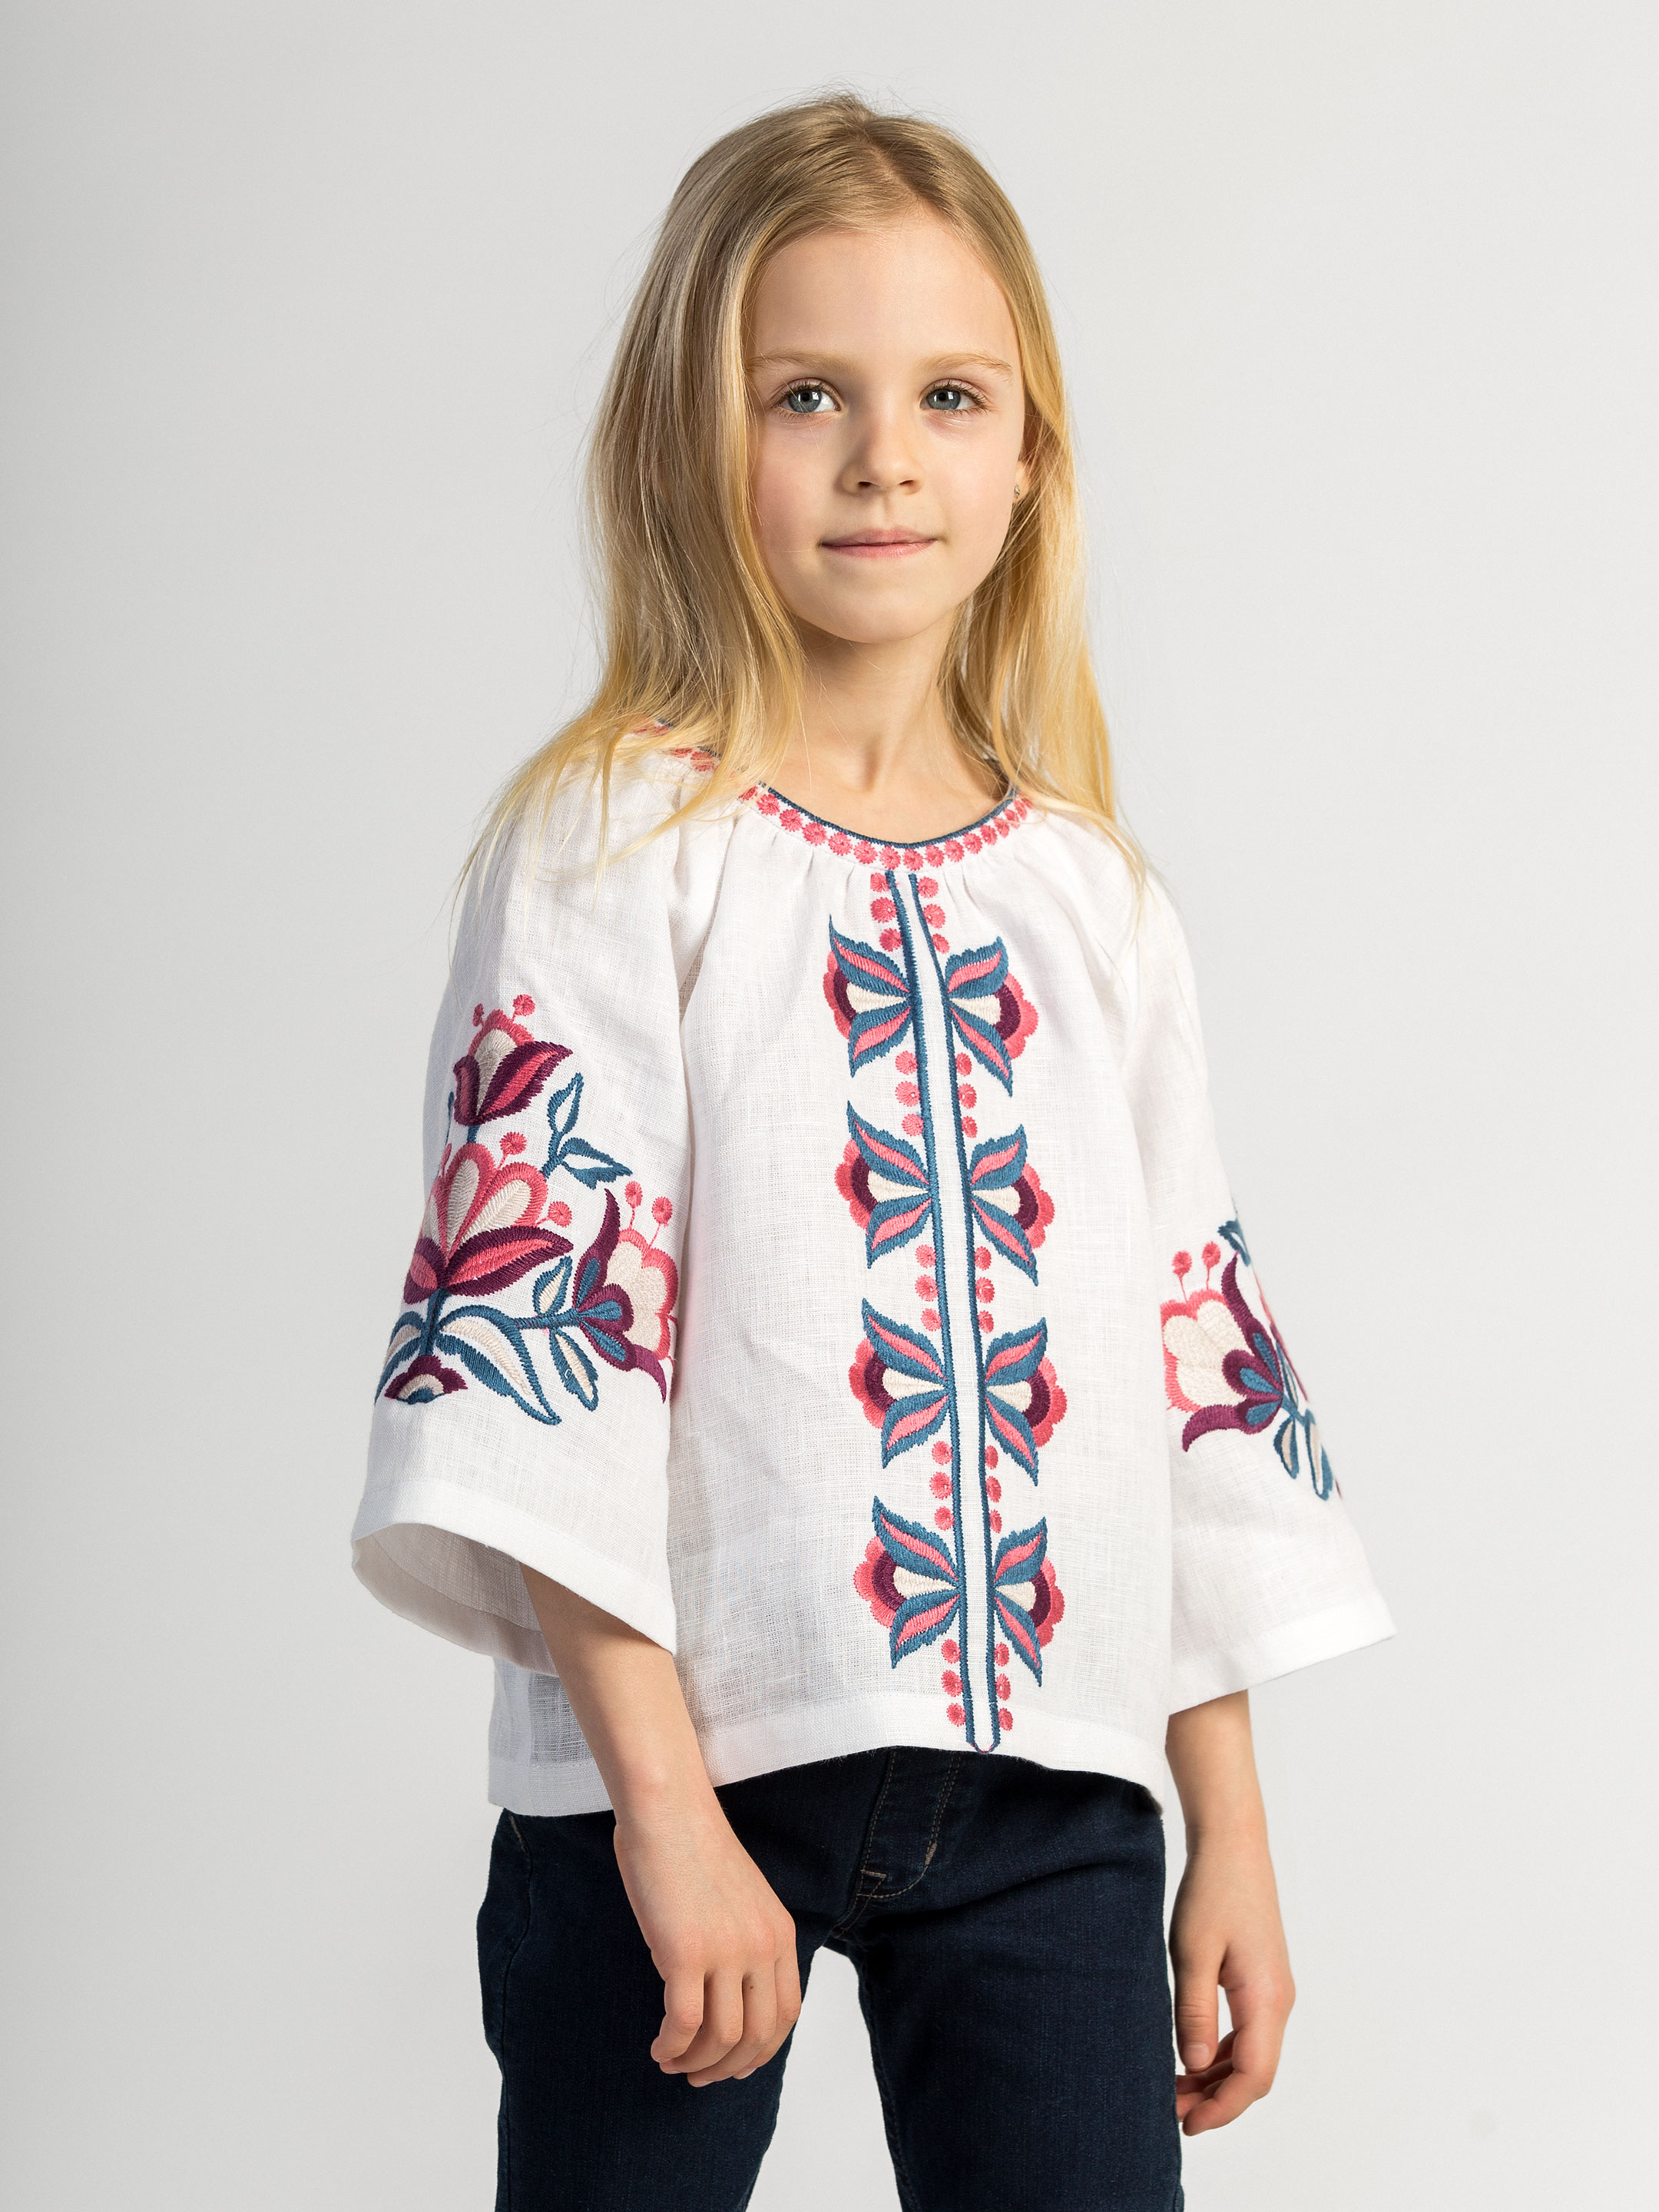 Embroidery for girls Bright Kids